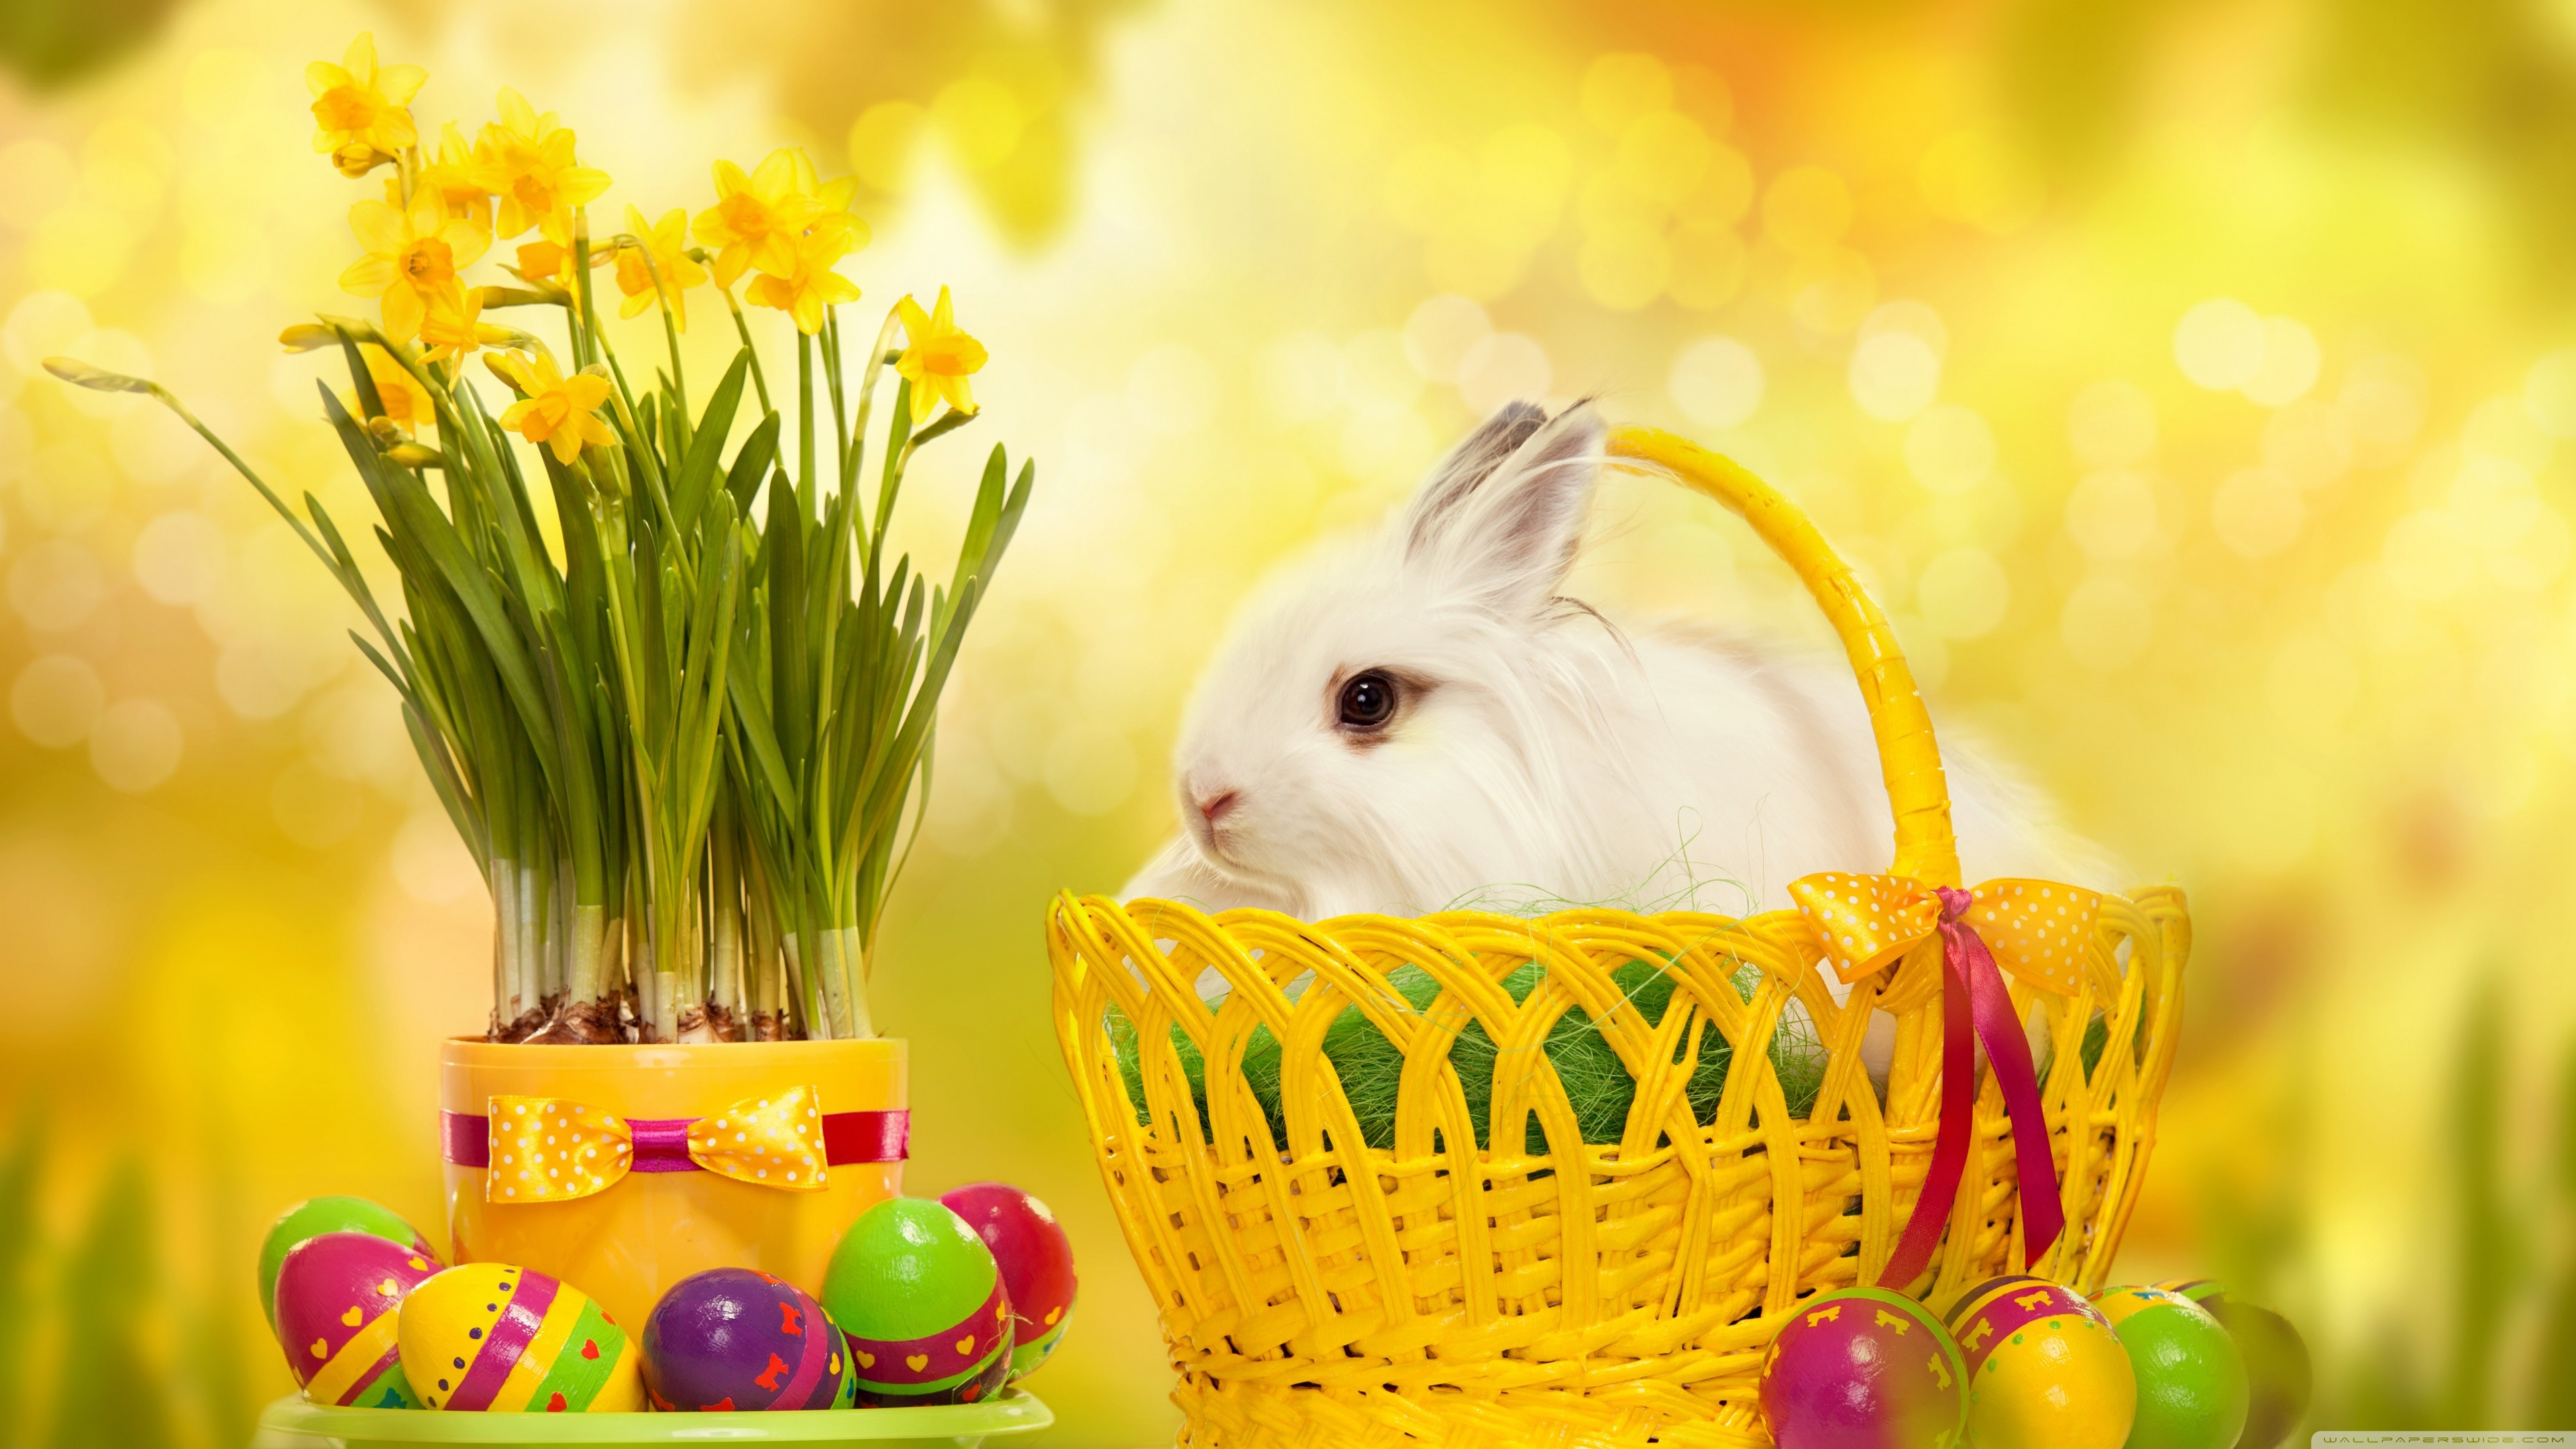 Easter wallpaper with cute animals 51 images - Easter desktop wallpaper ...